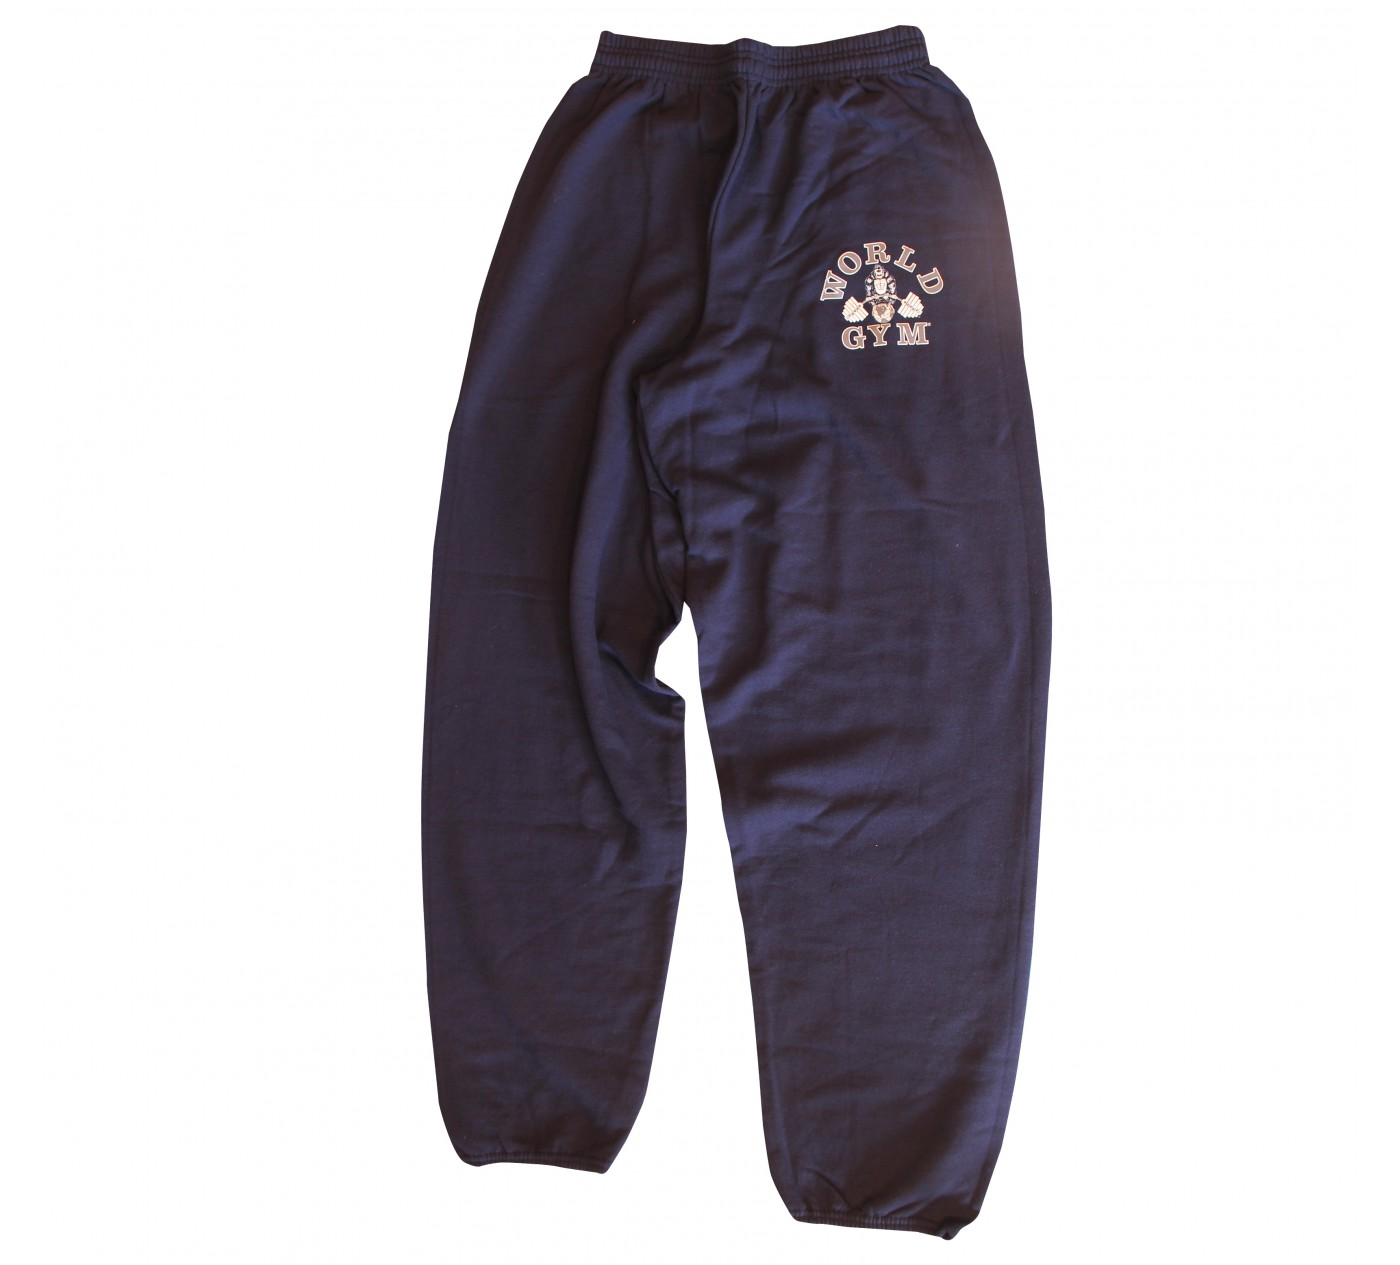 W550 World Gym sweatpants προπόνηση